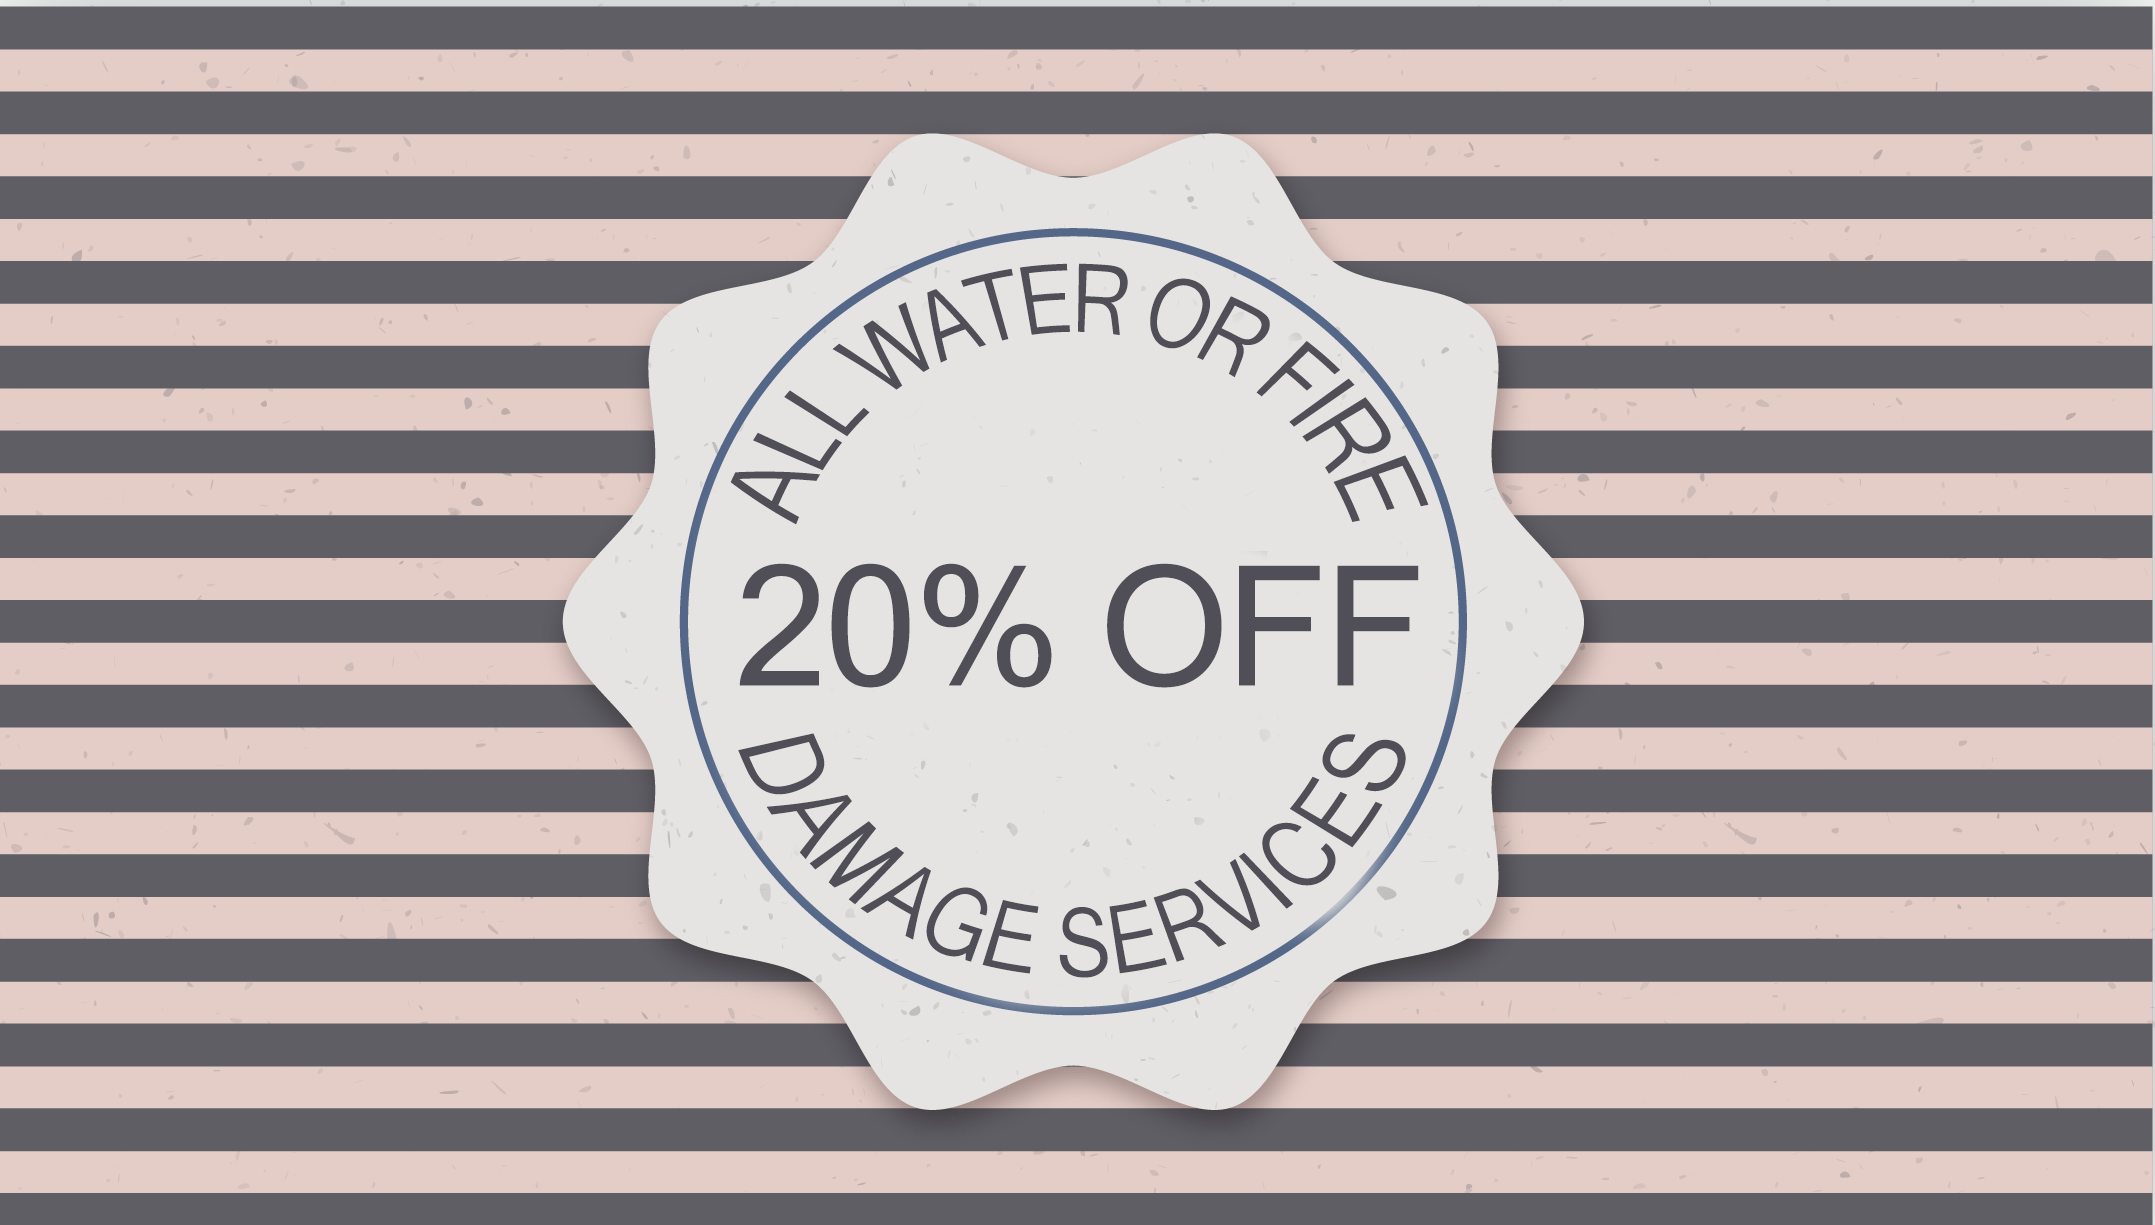 20 OFF ALL WATER OR FIRE DAMAGE SERVICES